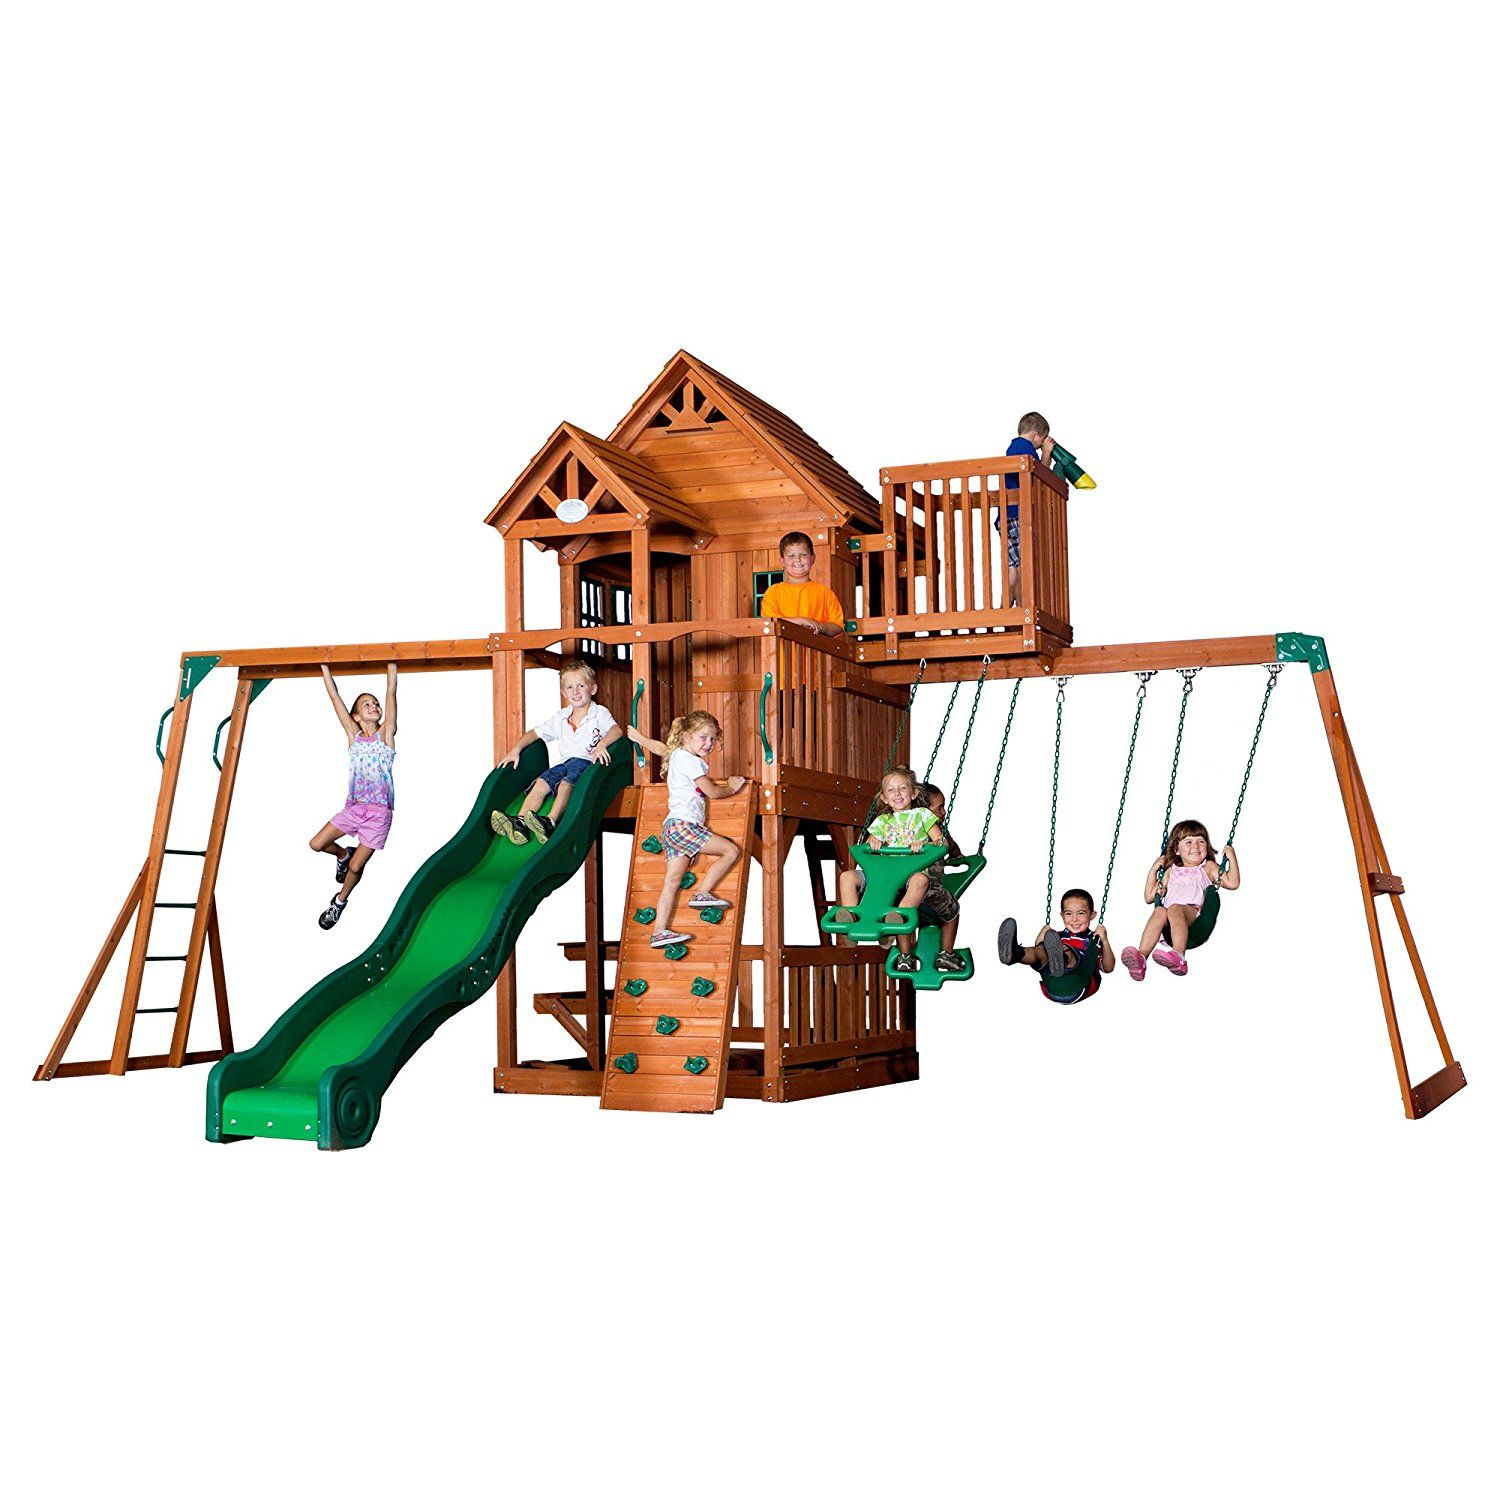 The Best Wooden Swing Sets And Playsets Of - Backyard playground equipment